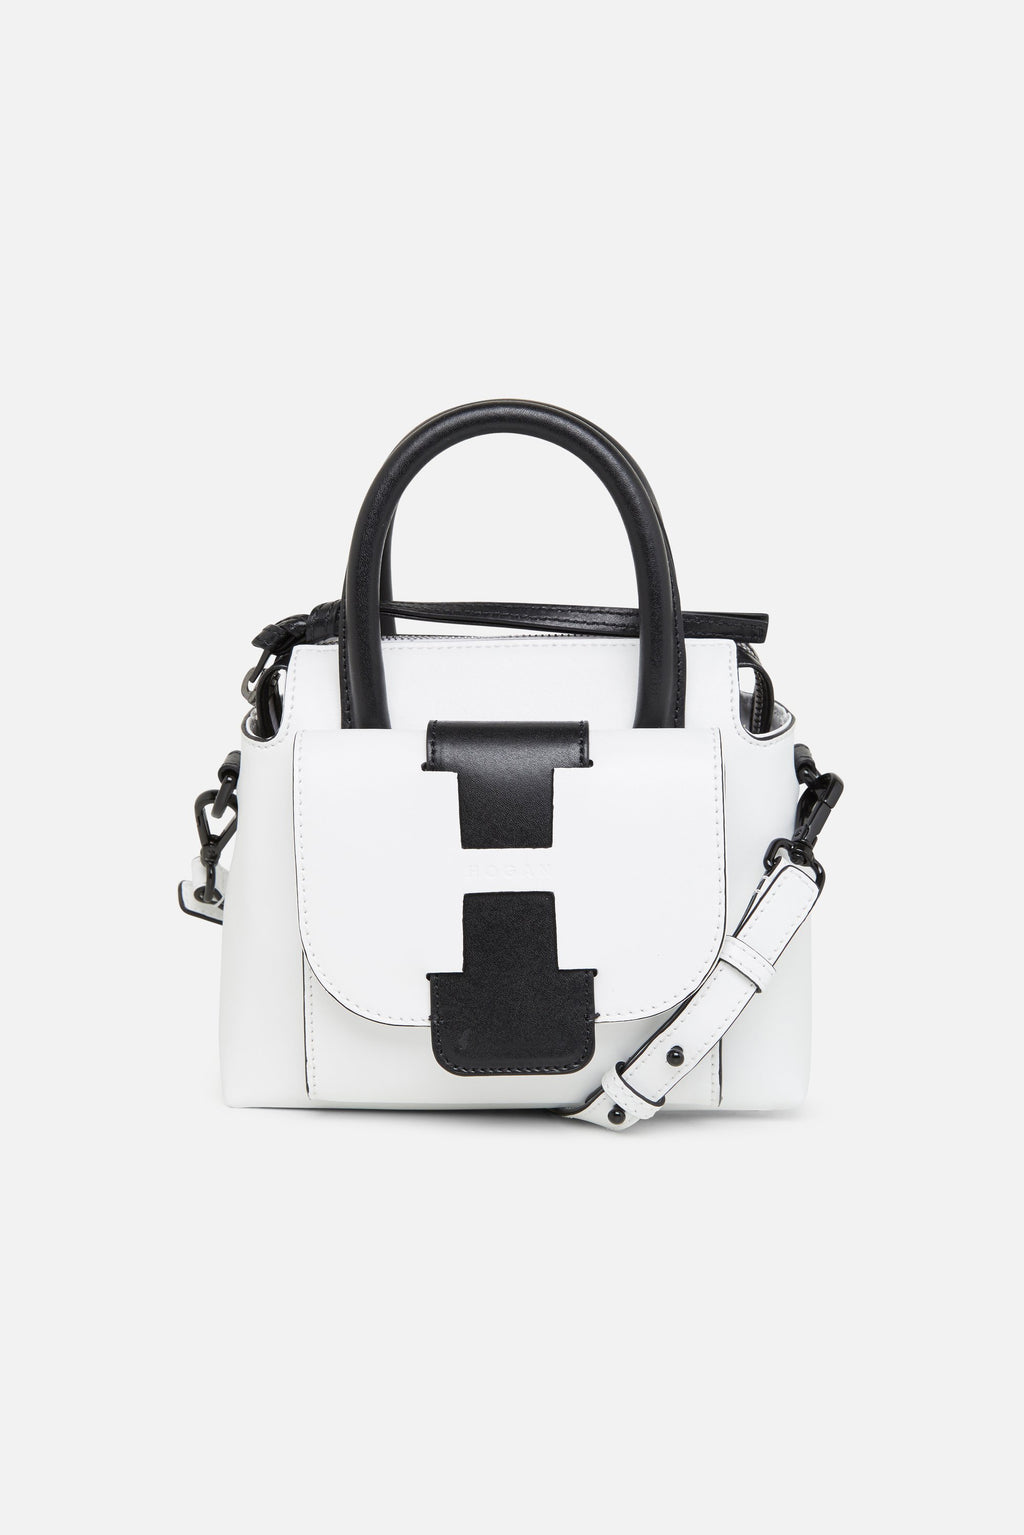 Hogan Bauletto White Leather Mini Bag